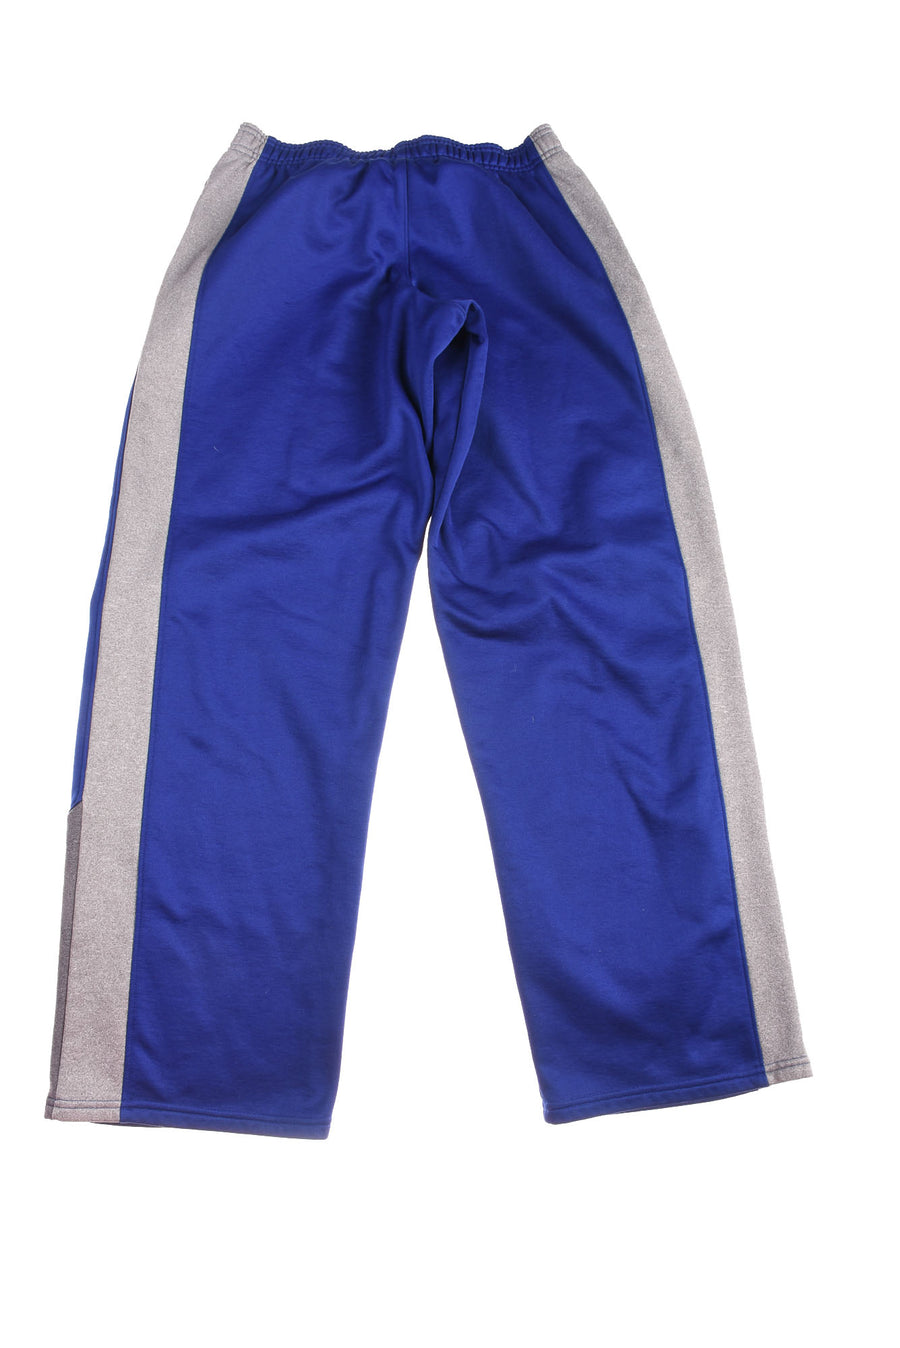 USED Under Armour Boy's Pants X-Large Blue & Gray